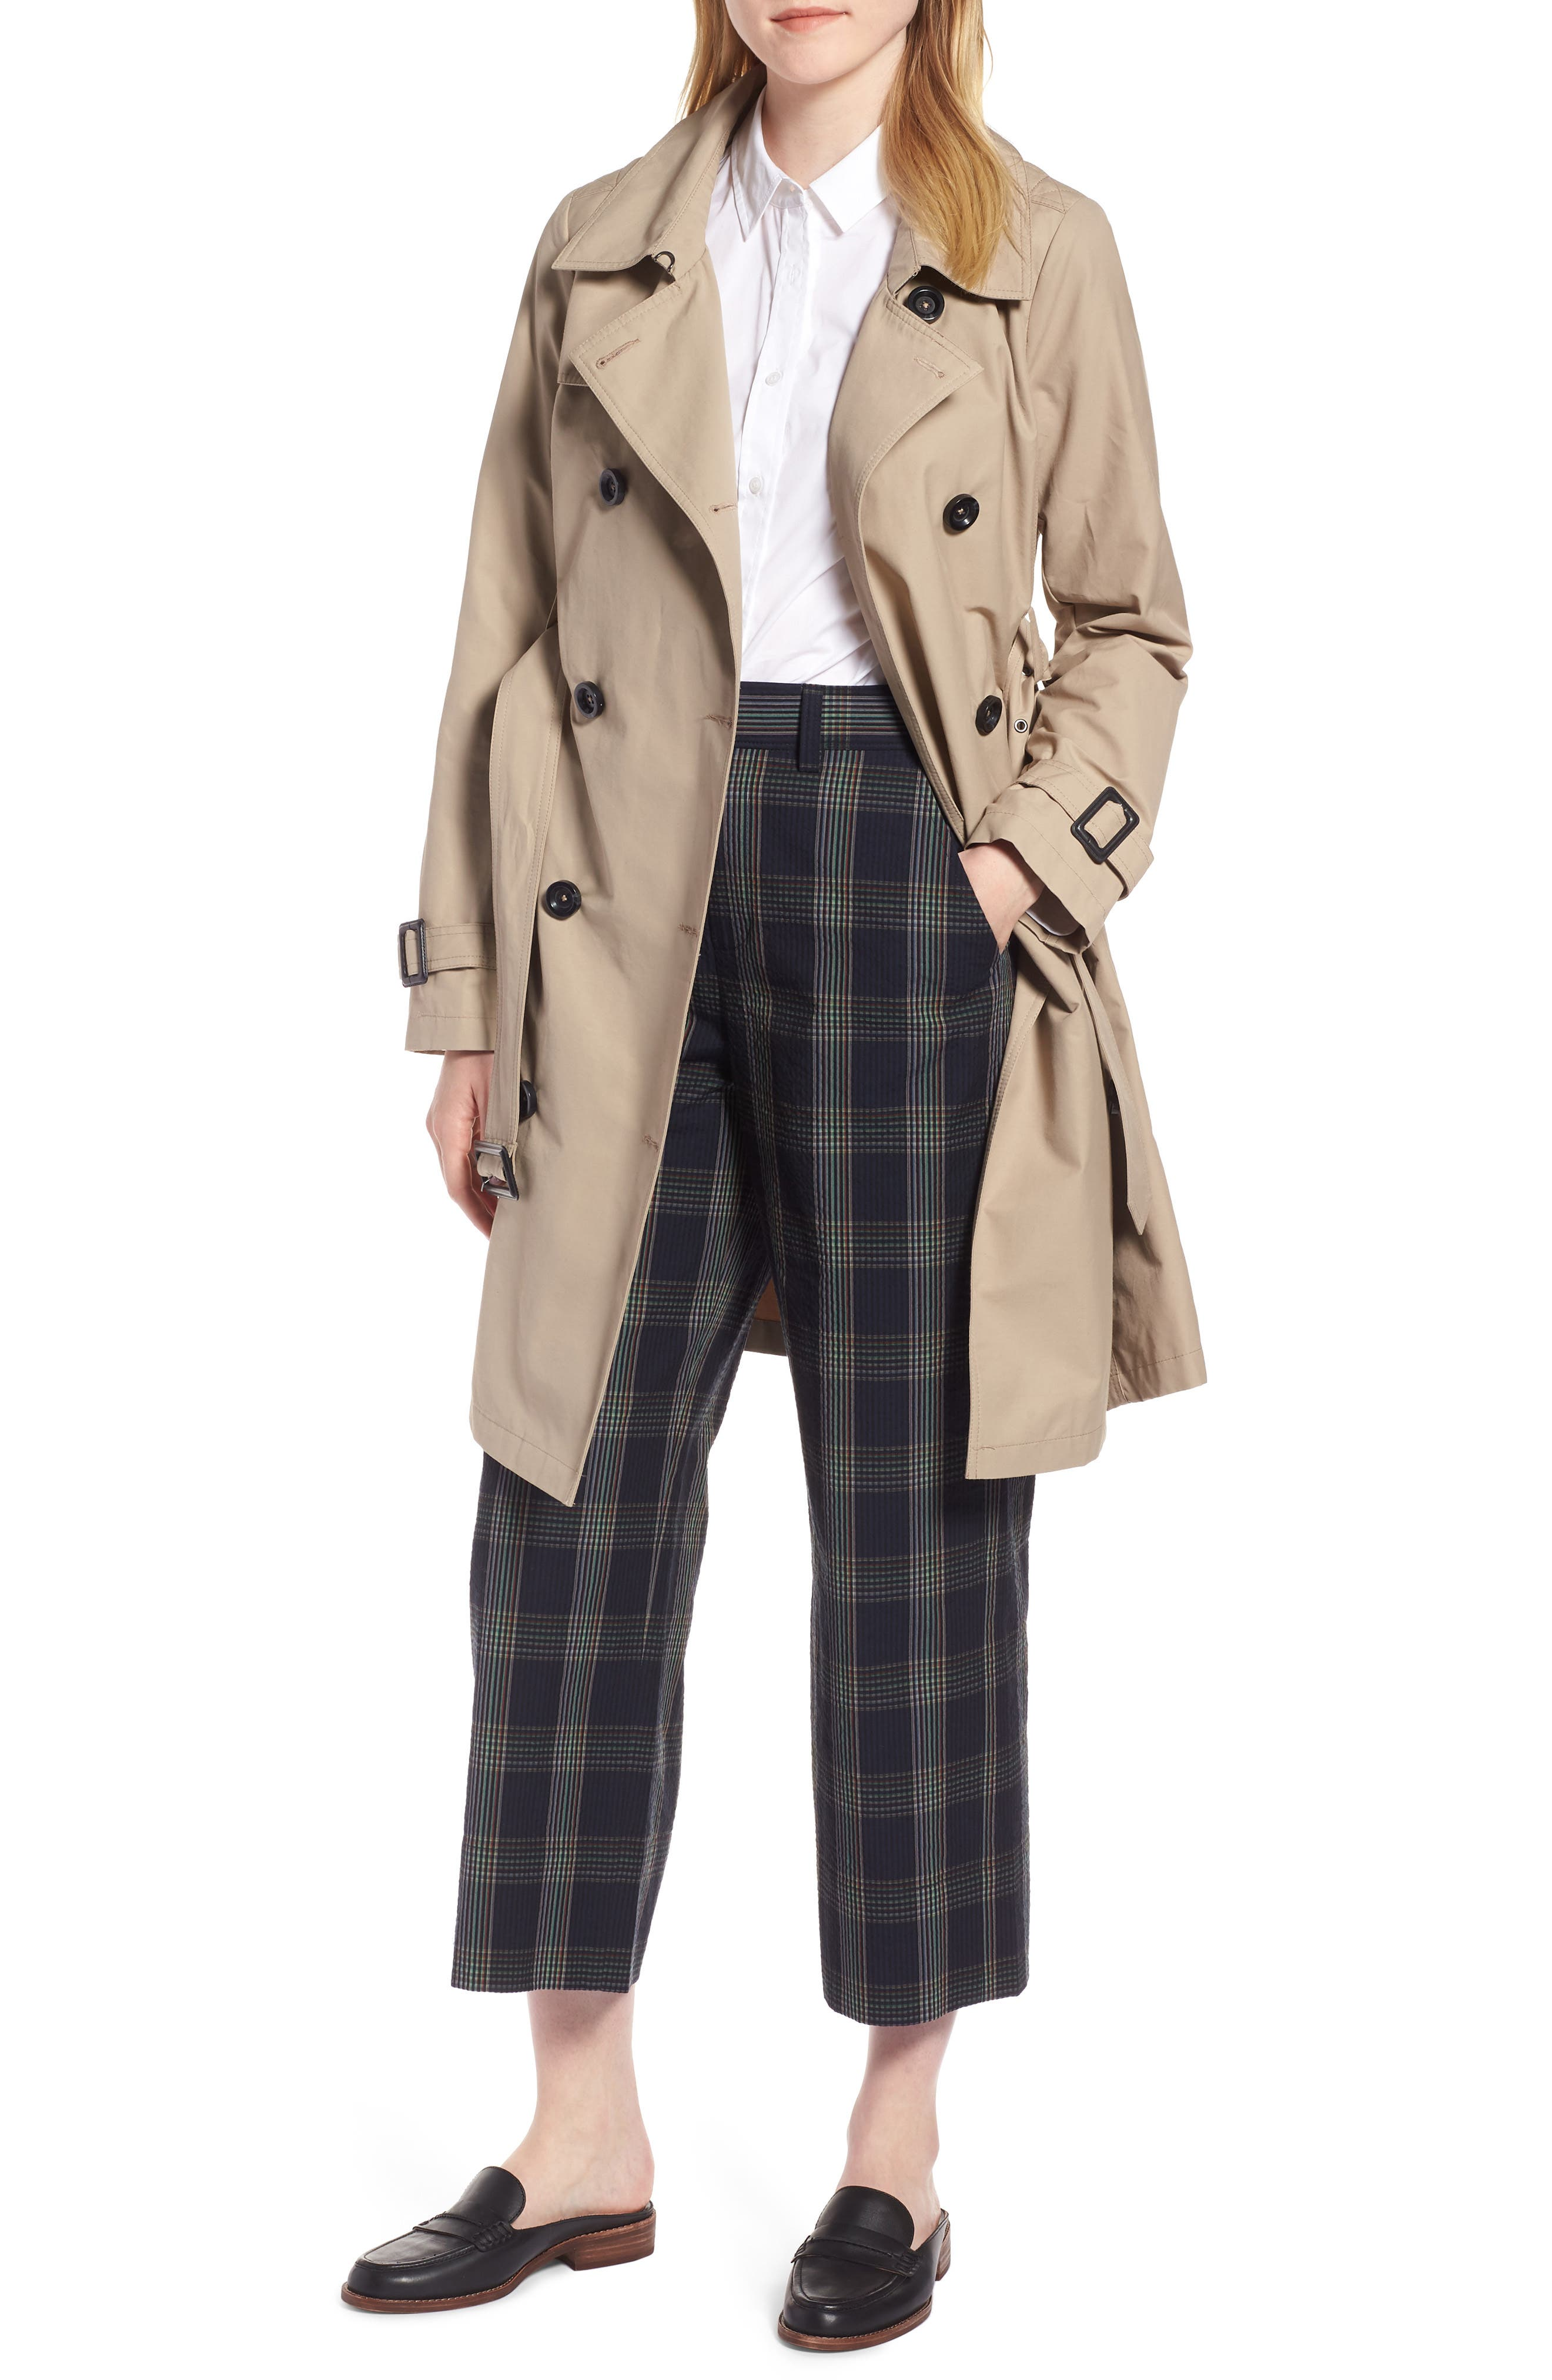 3-in-1 Trench Coat with Vest,                             Alternate thumbnail 2, color,                             299